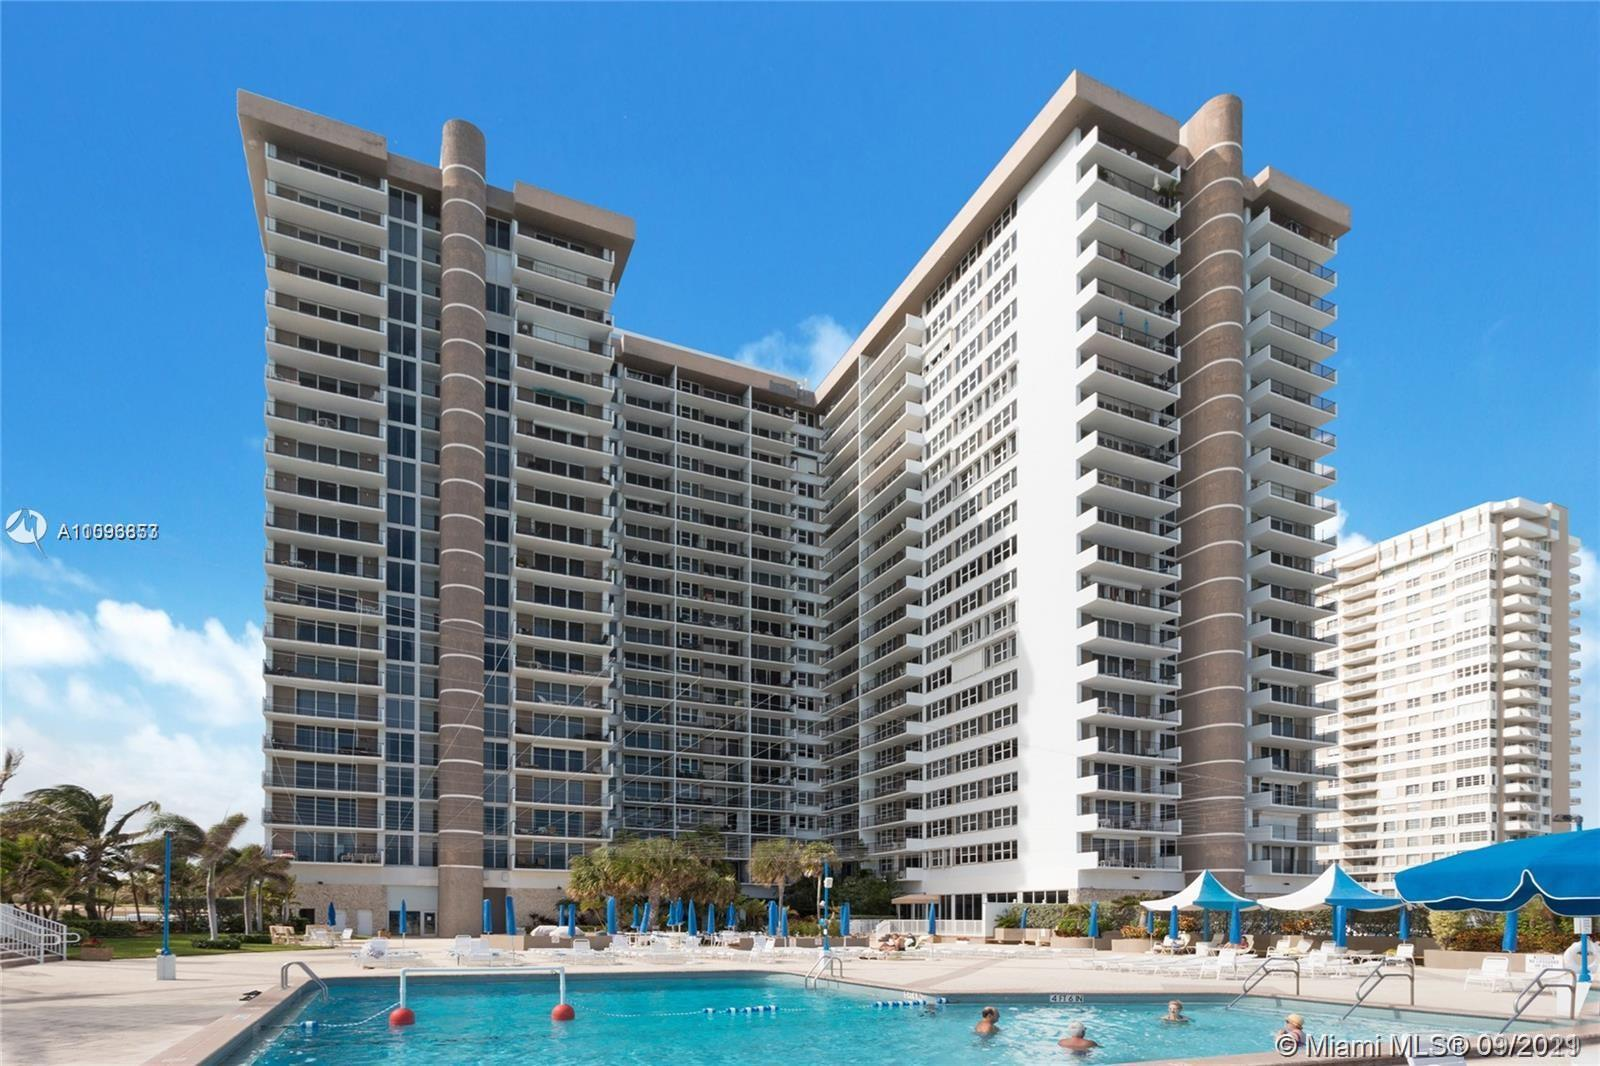 Completely renovated charming apartment for SALE! This unit features direct ocean views and ocean ac